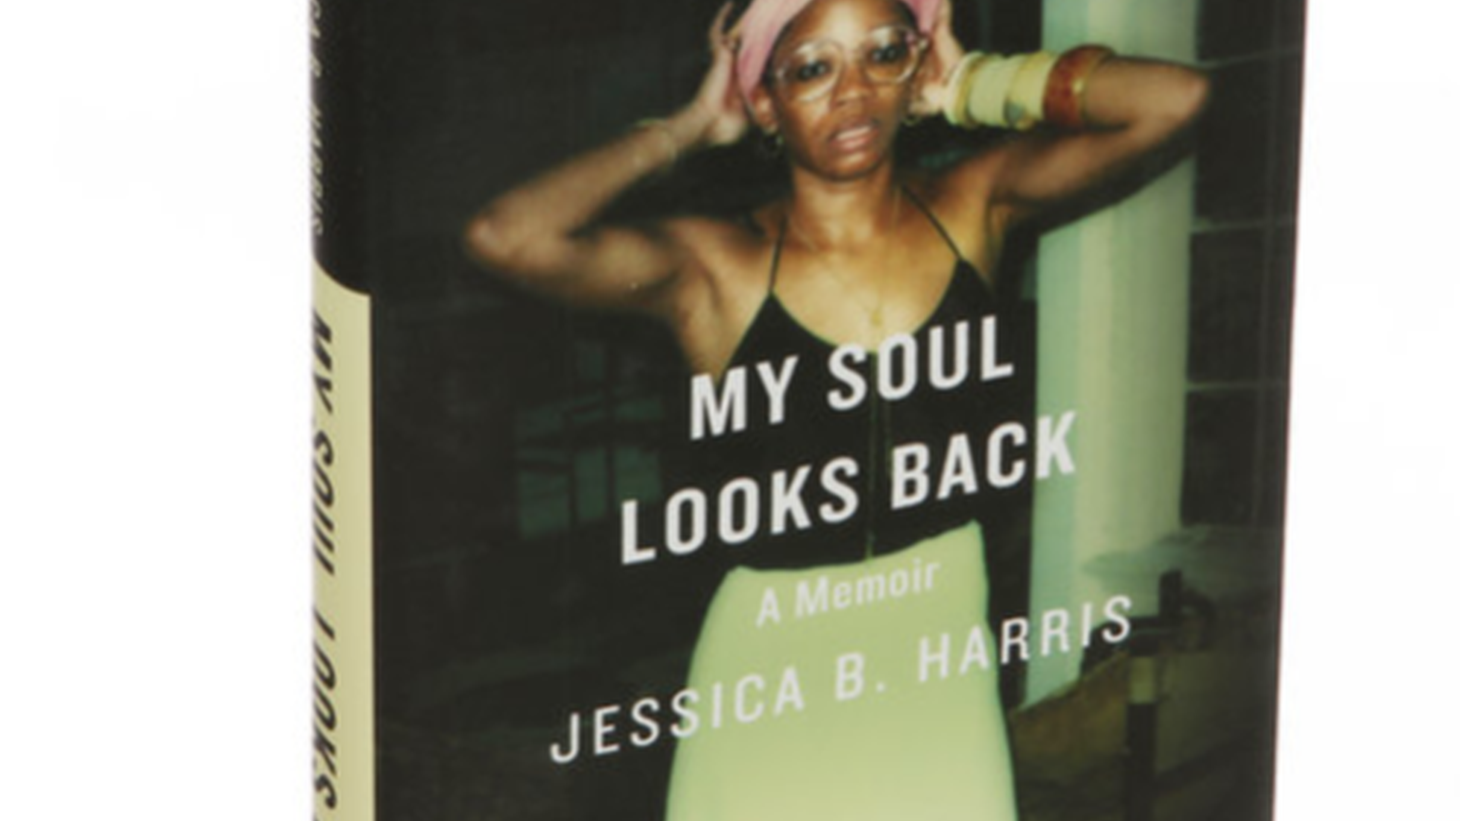 "After penning ""High on the Hog,"" Jessica B. Harris decided her next work would be a memoir, recounting her youth living in New York City in the 1970s surrounded by the most revered Black voices of their generation."